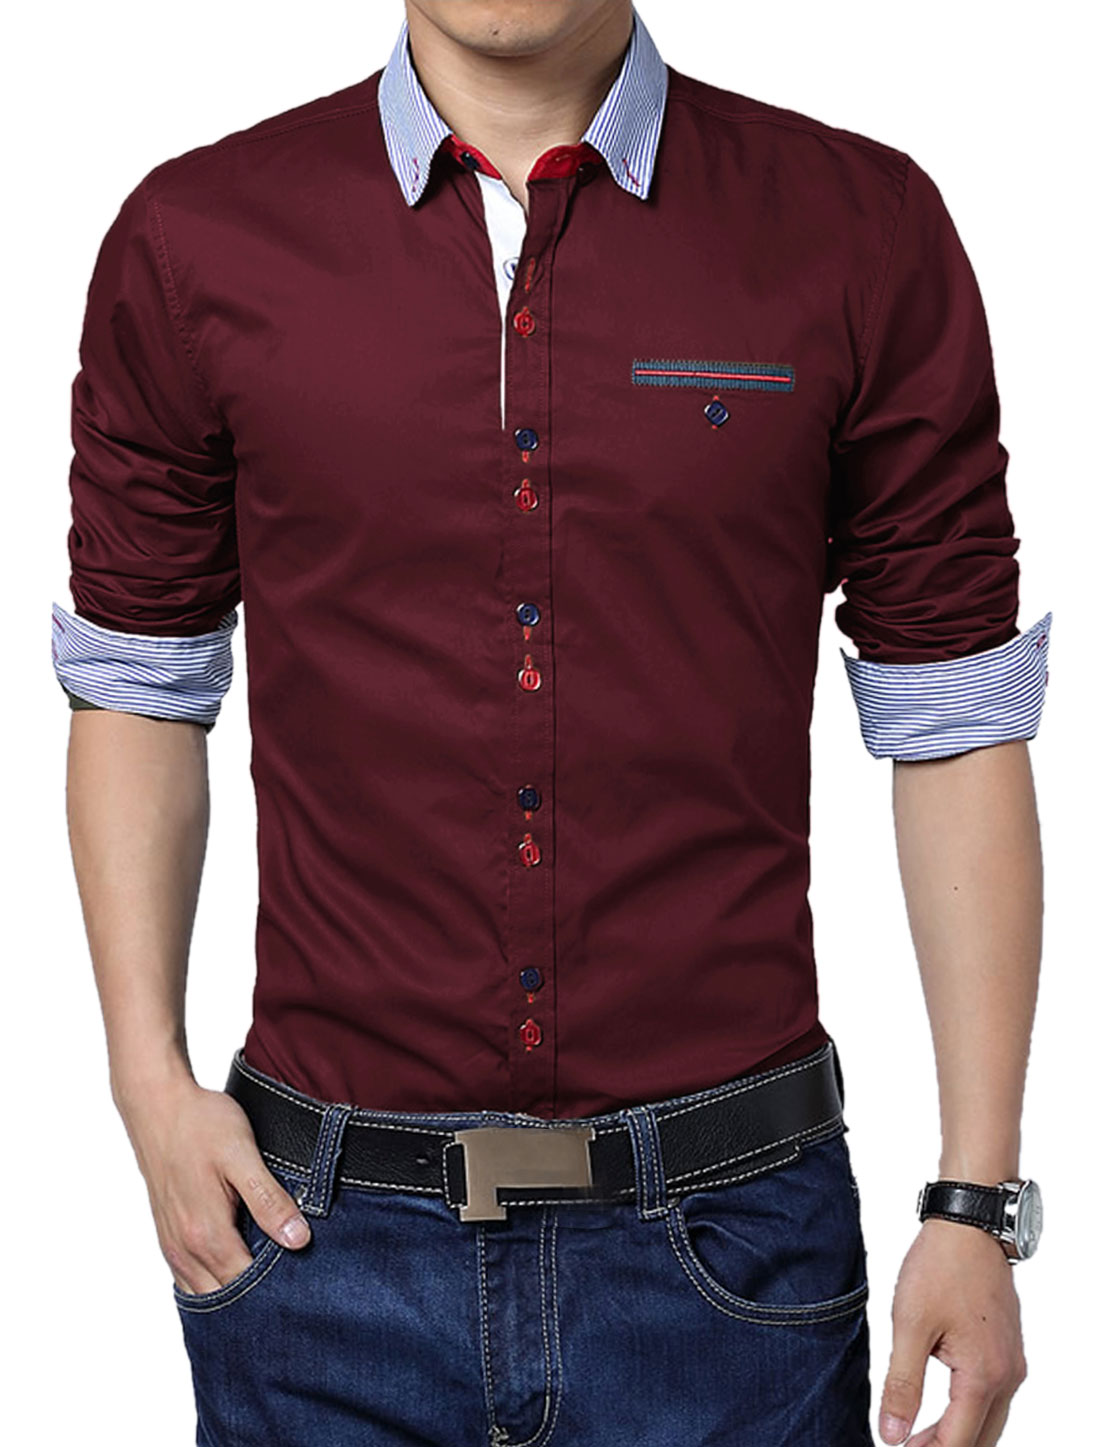 Men Embroidery Detail Panel Stripes NEW Trendy Top Shirt Burgundy L